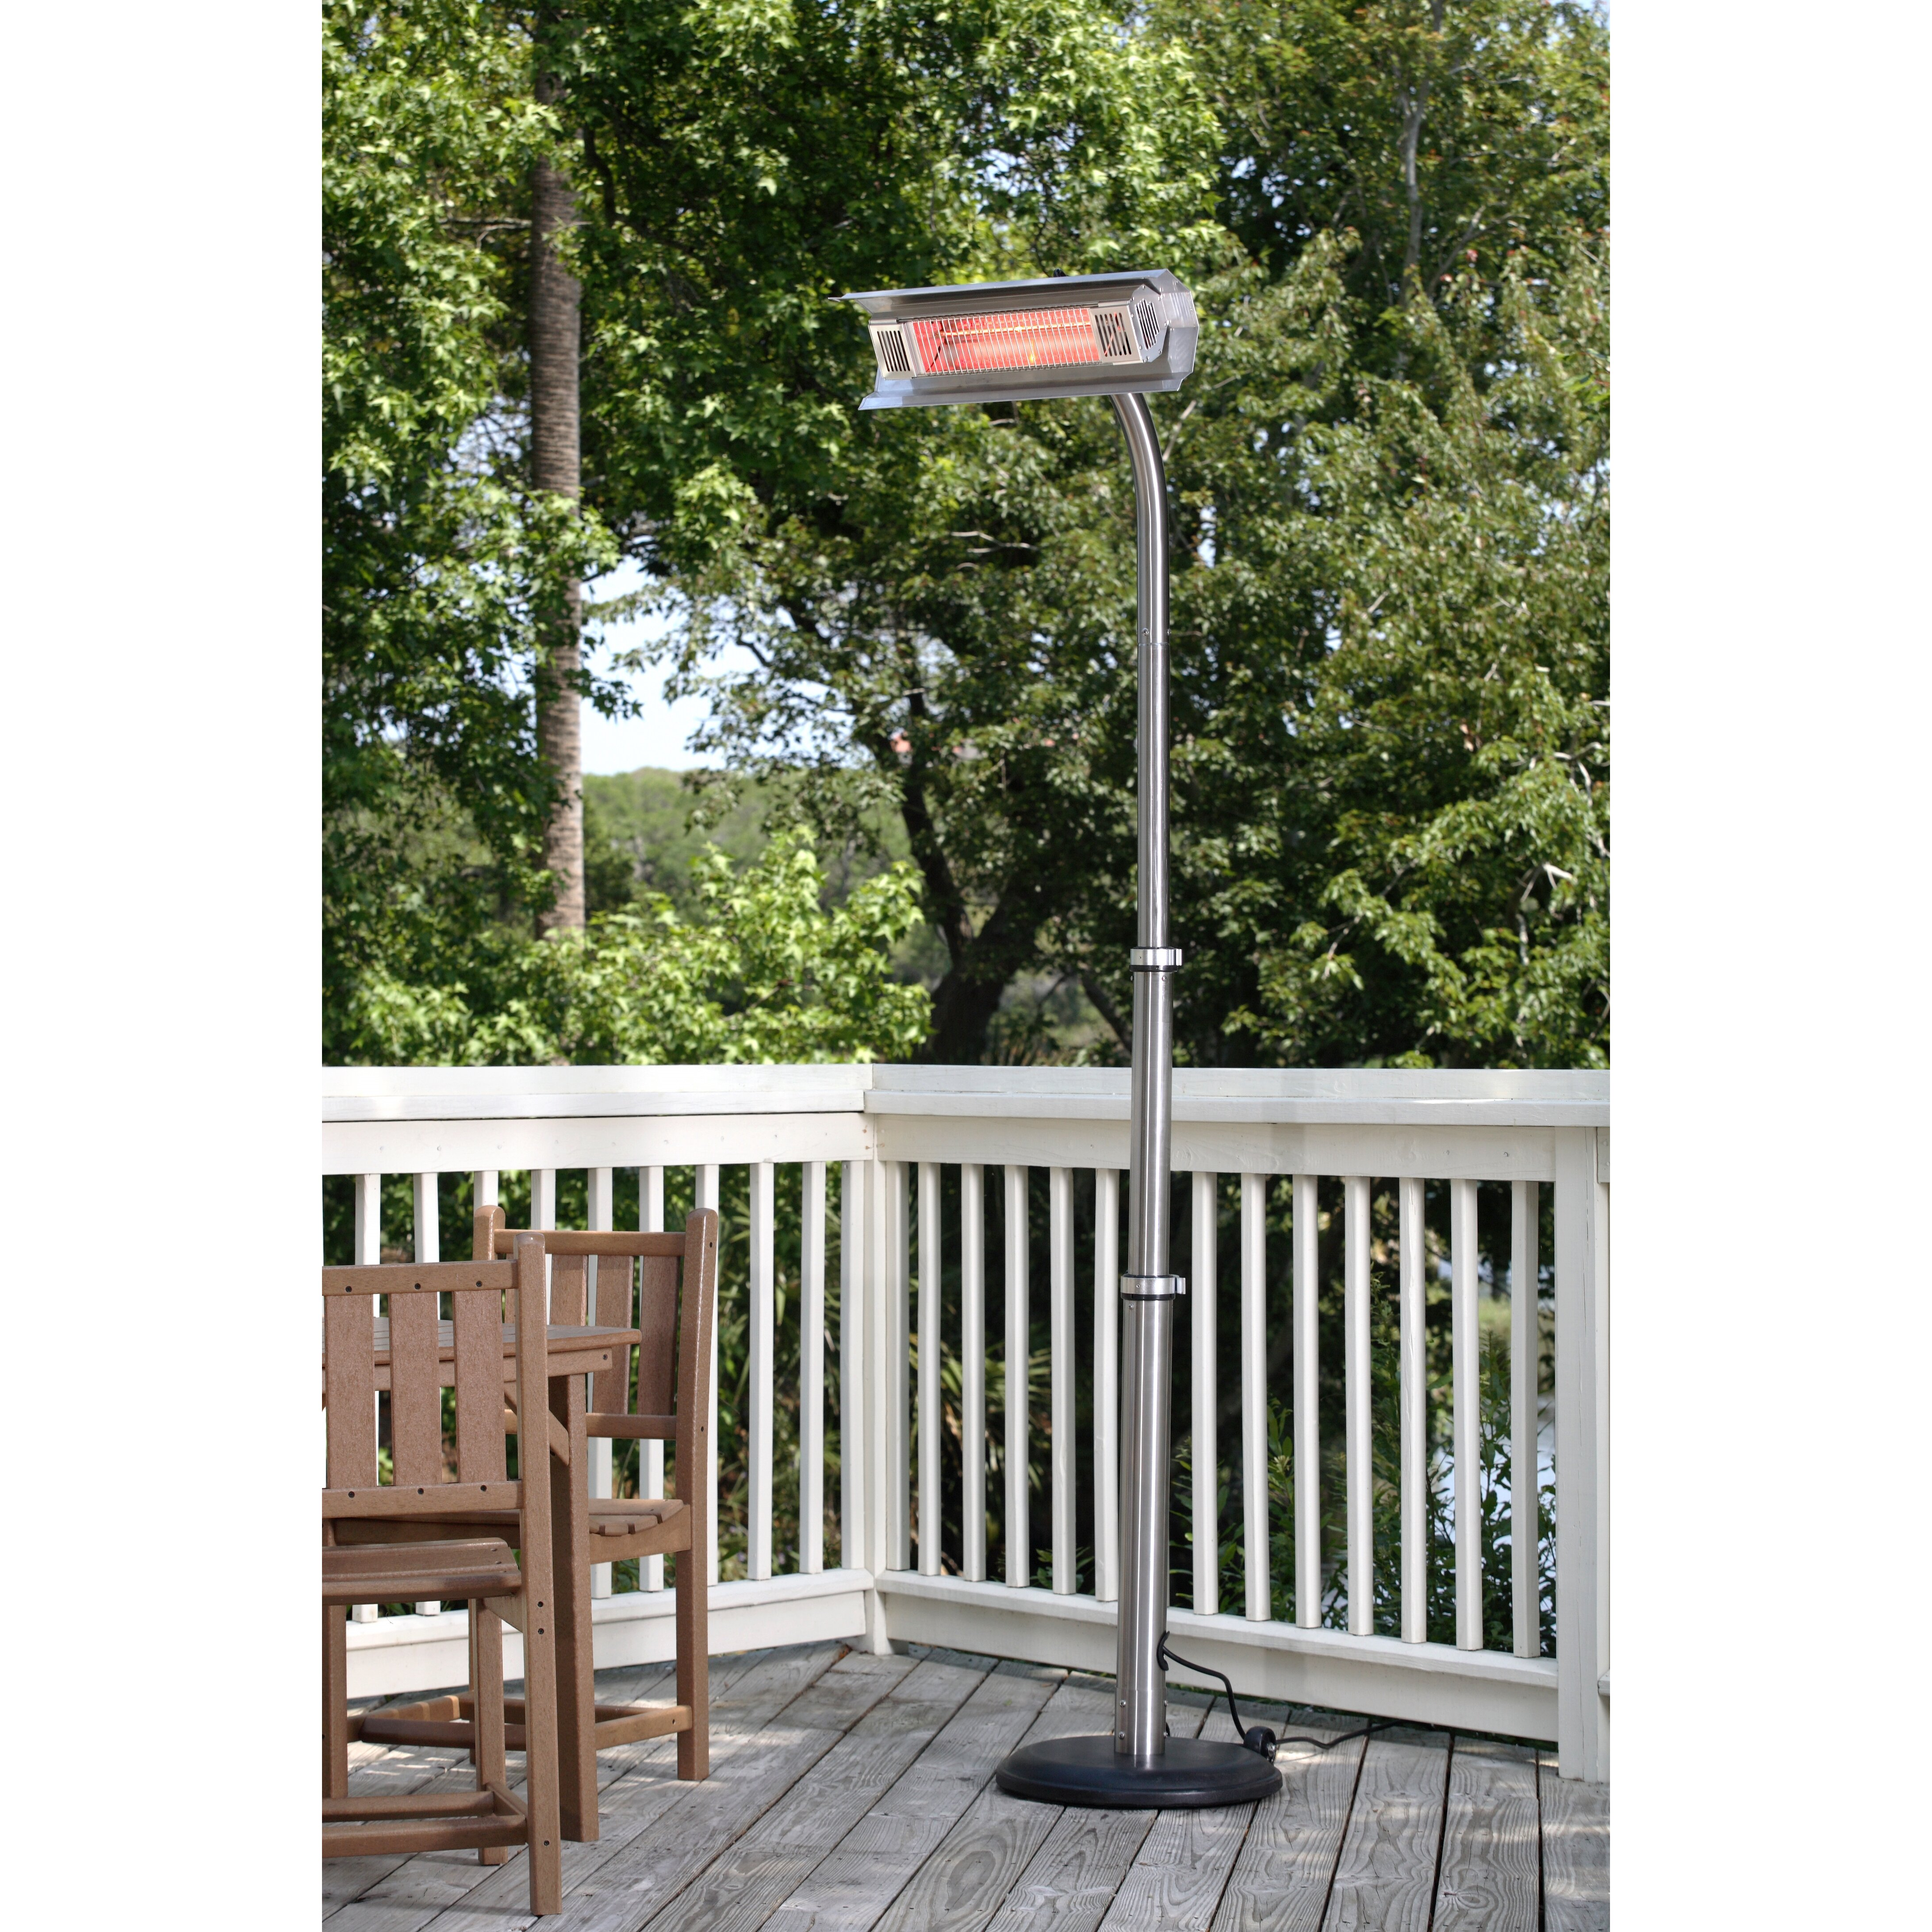 Sunjoy Patio Heater Parts Modern Patio Uamp Outdoor With Sunjoy Industries.